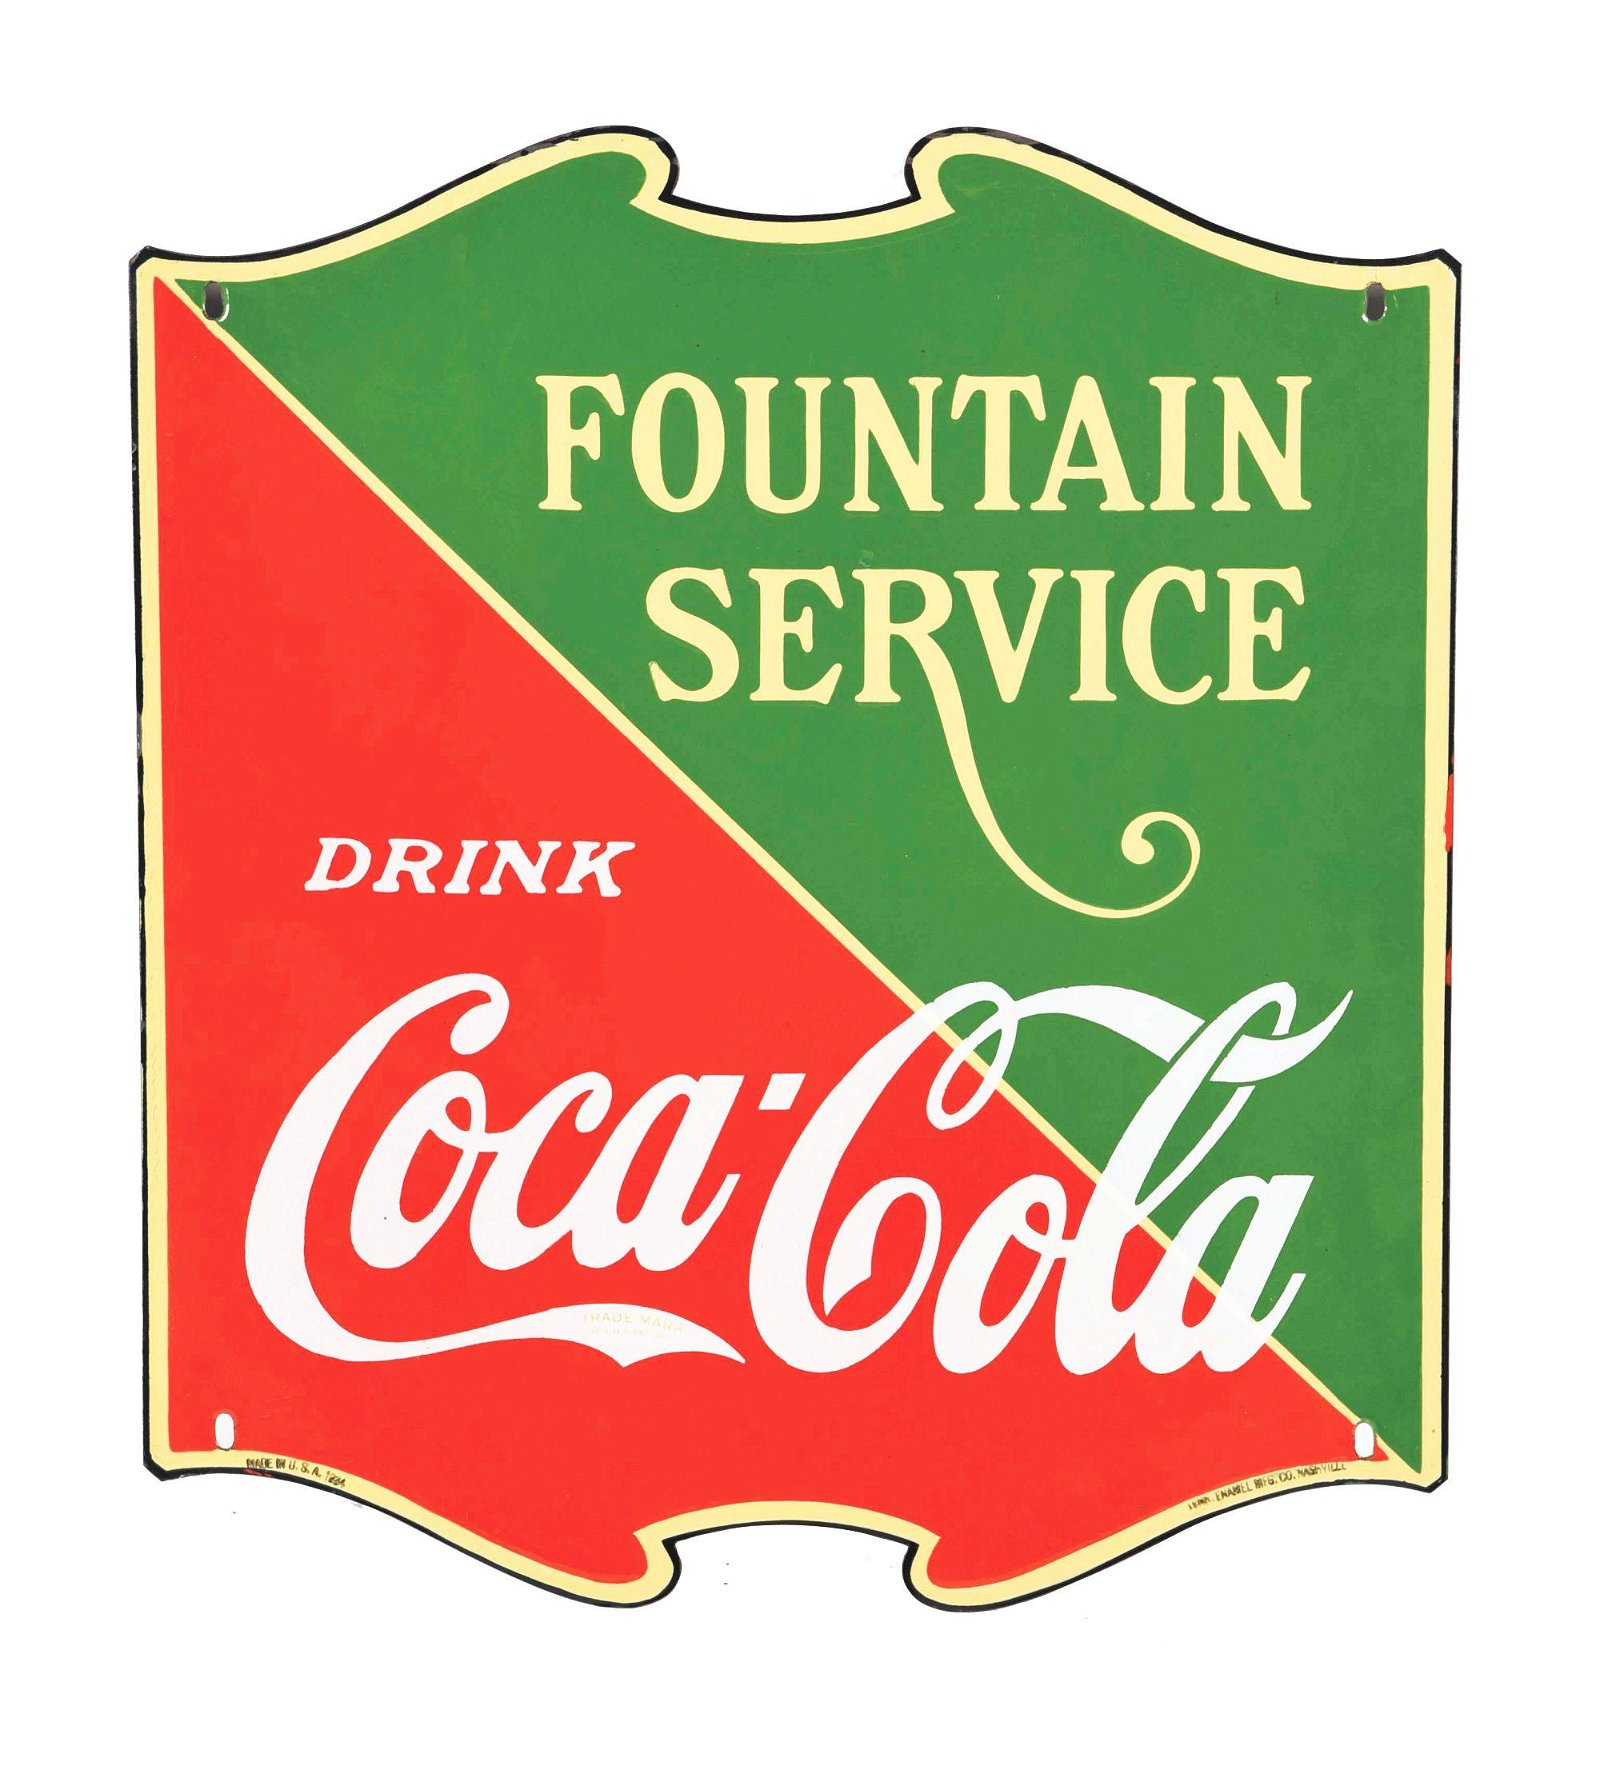 SINGLE-SIDED PORCELAIN COCA-COLA DIE-CUT FOUNTAIN SIGN.